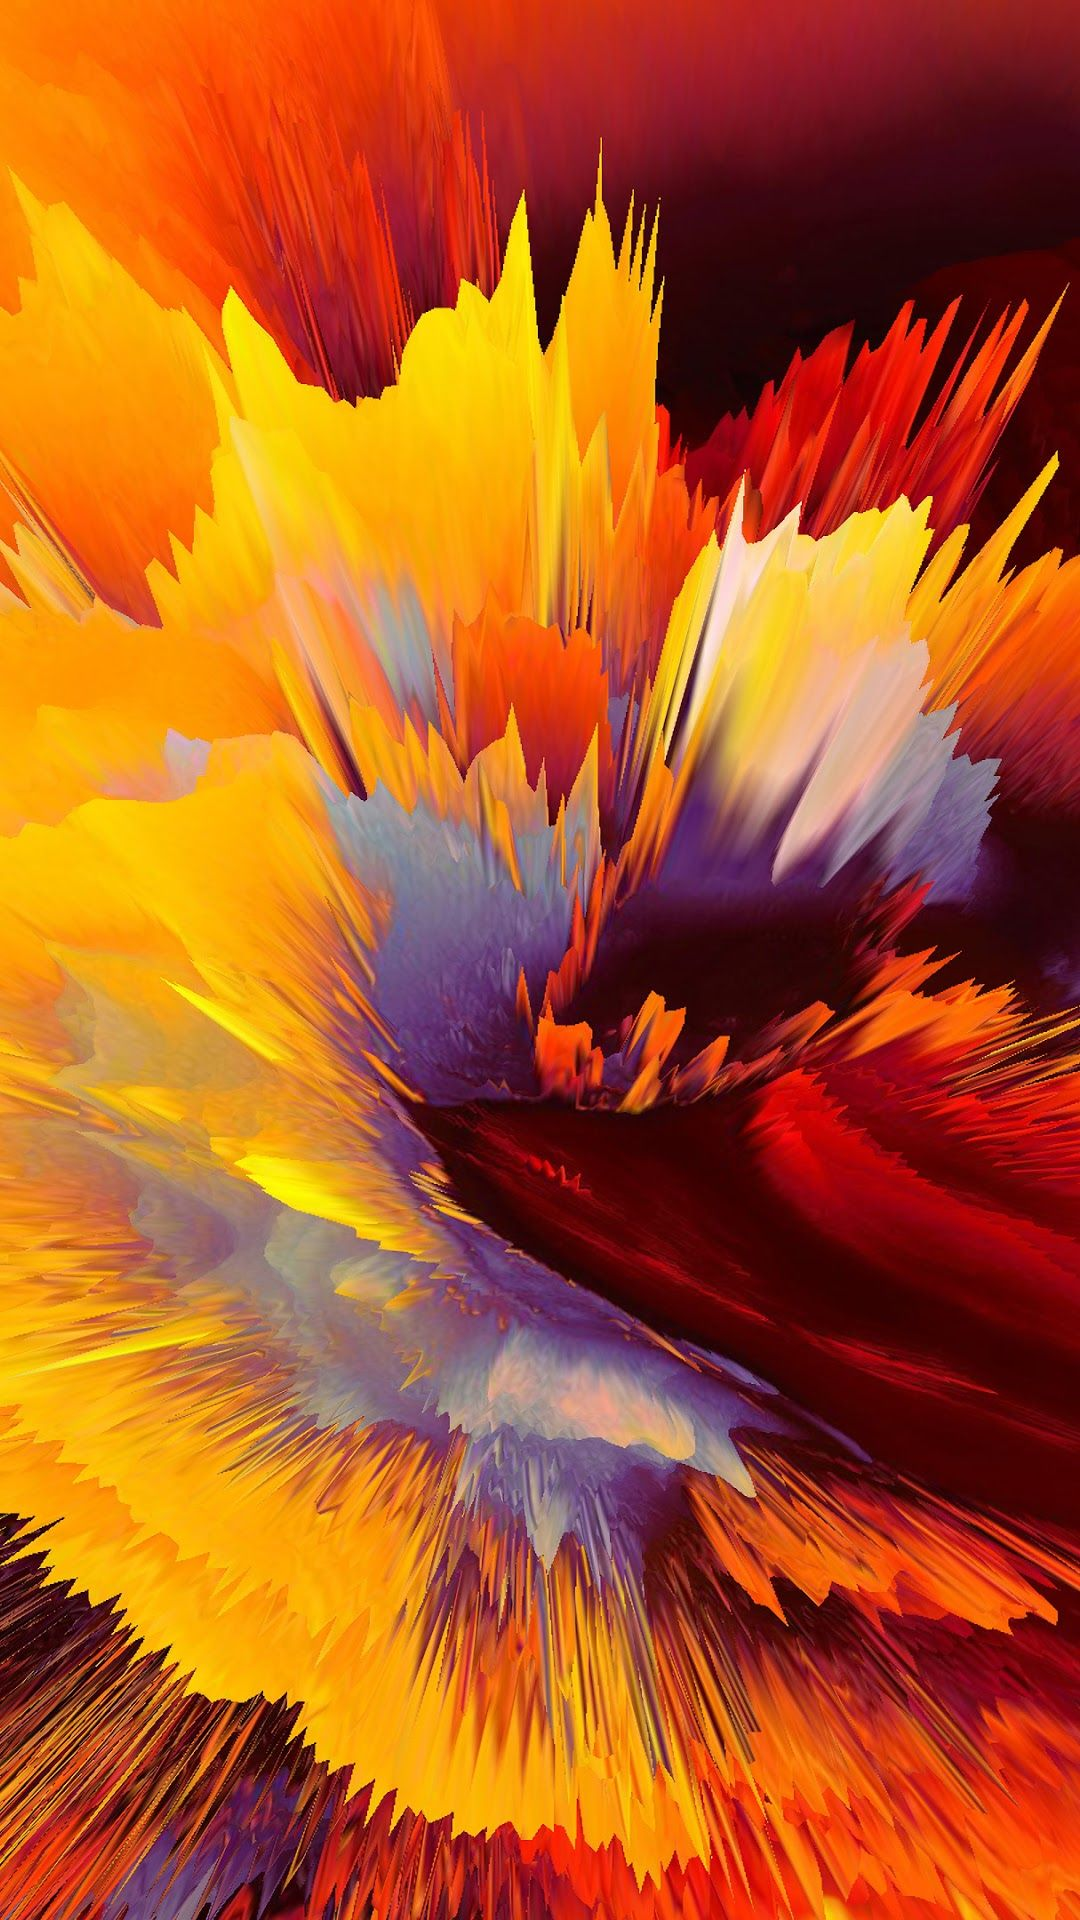 4k Smartphone Abstract Wallpapers - Wallpaper Cave